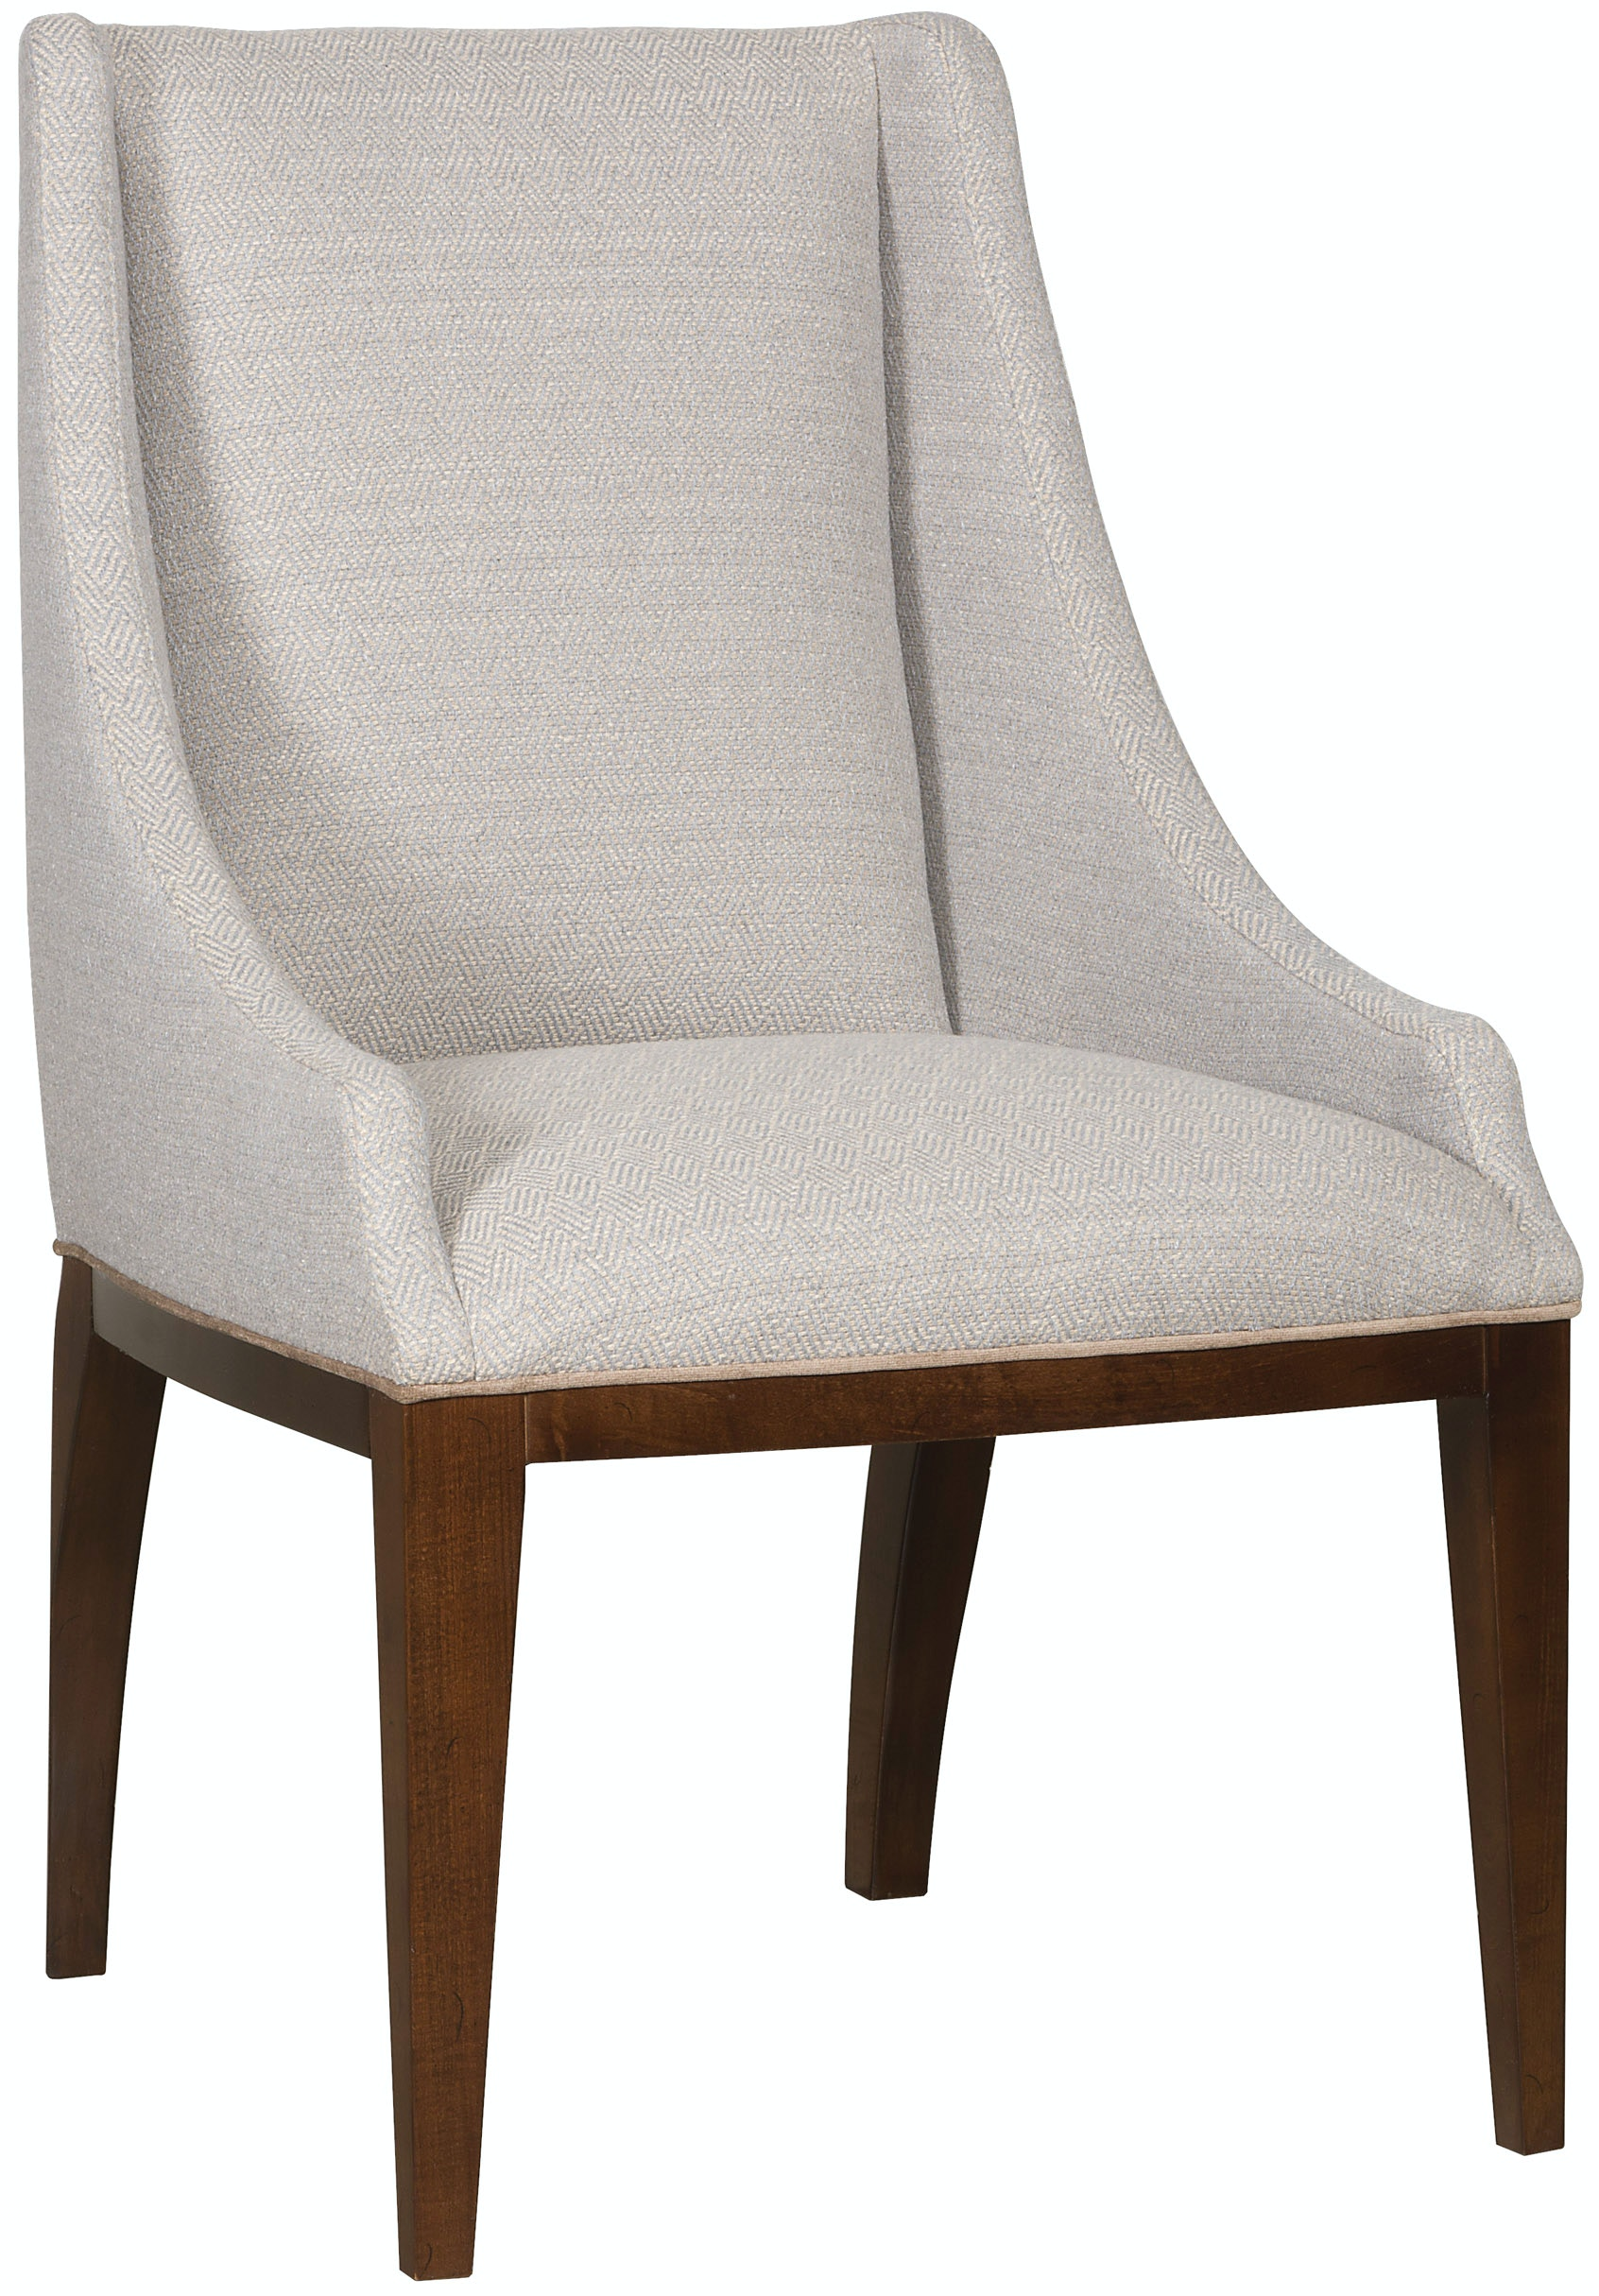 Arm Chairs Dining Room Vanguard Dining Room Ithaca Dining Arm Chair 9706a Norris